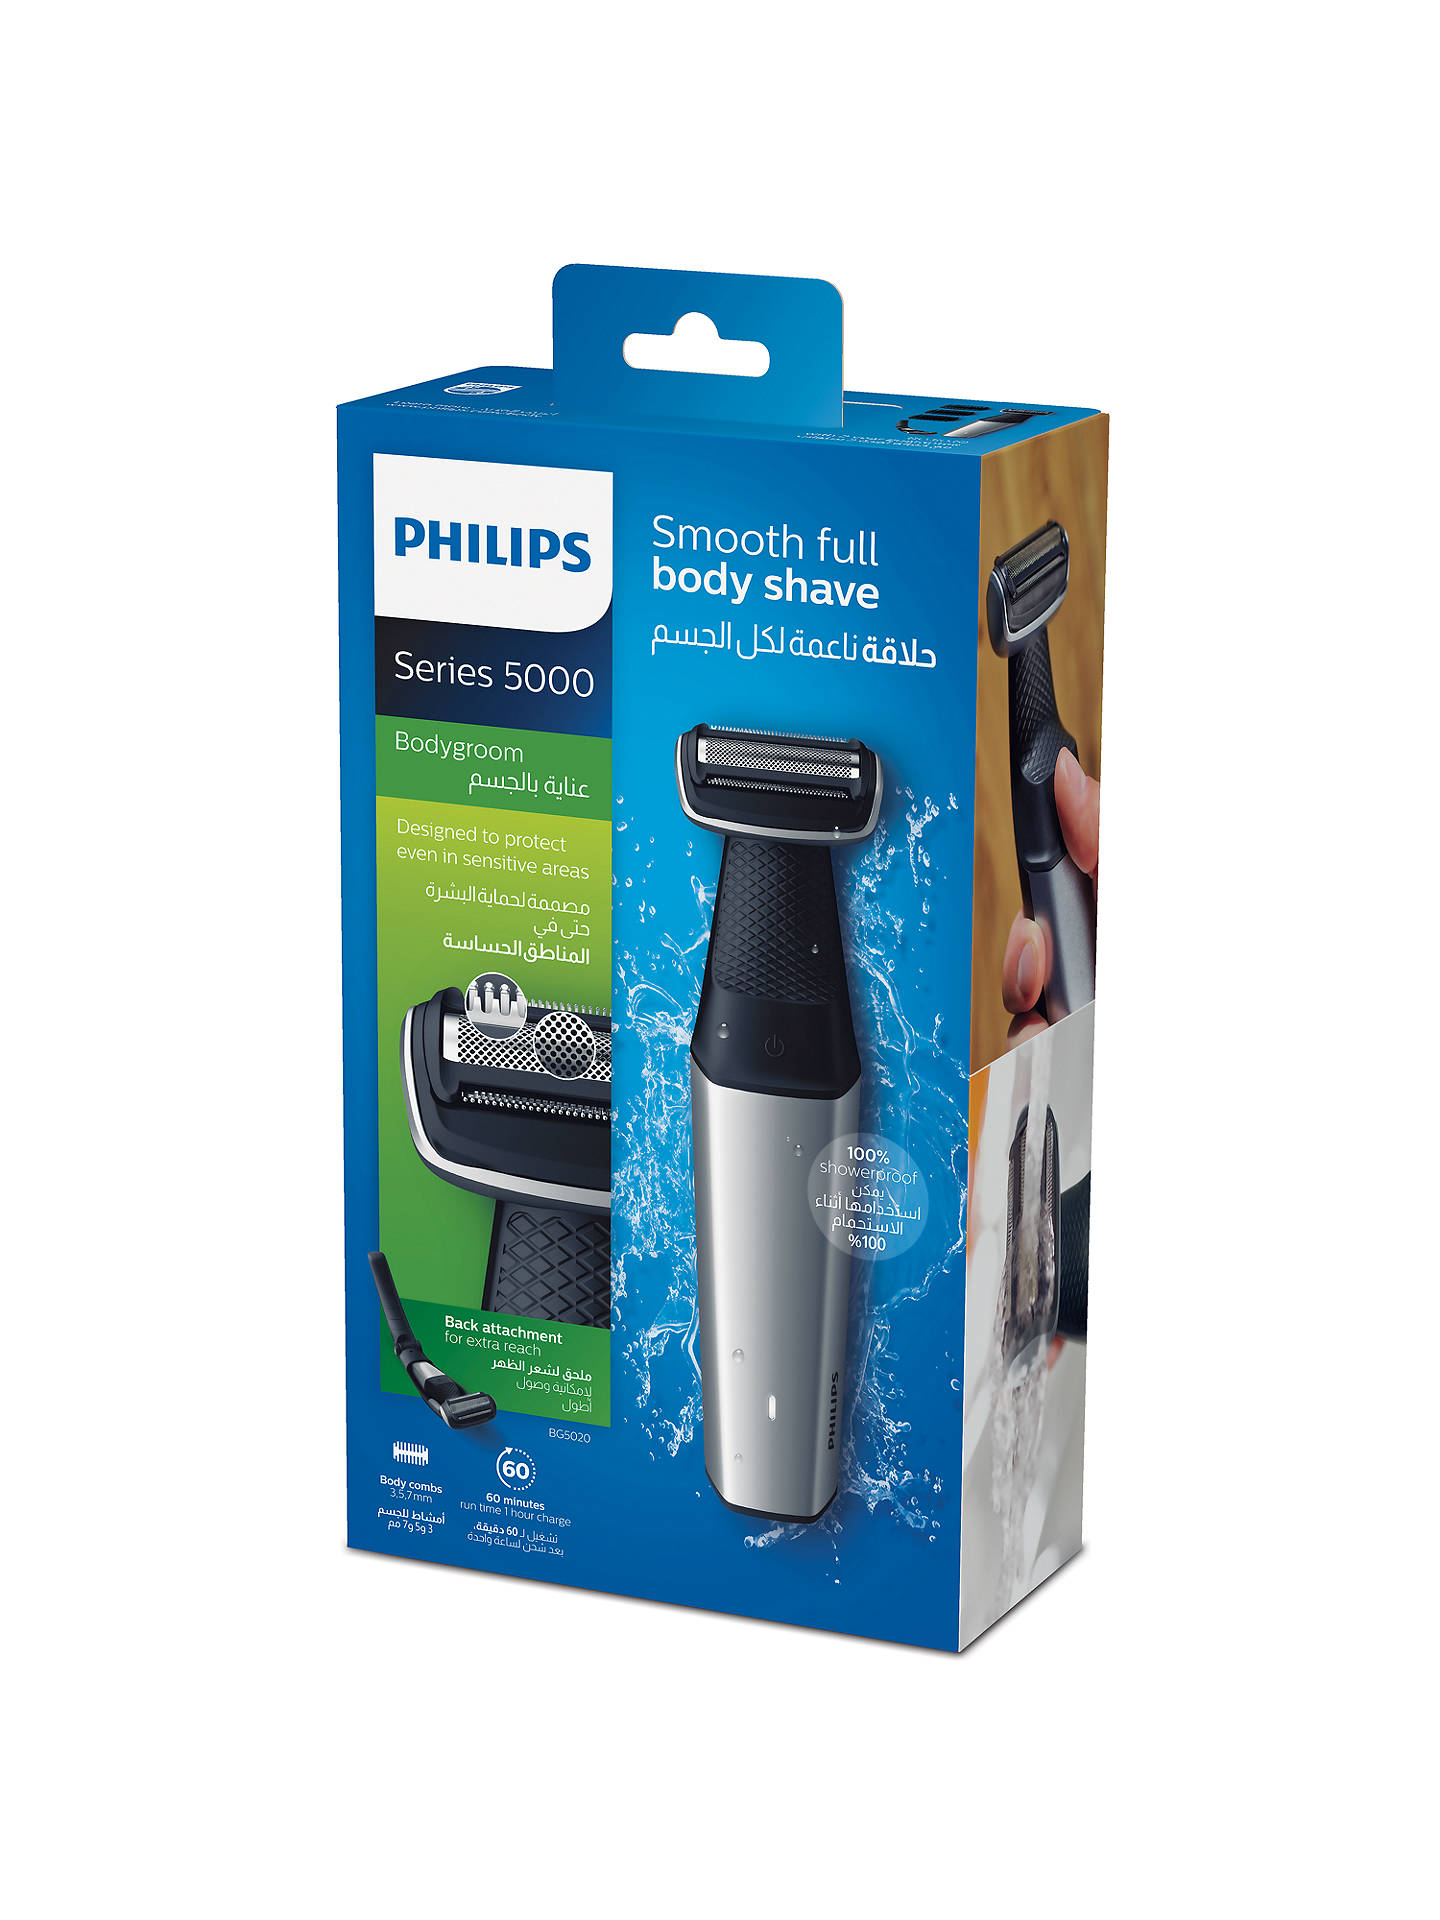 Buy Philips Series 5000 Showerproof Body Groomer with Back Attachment, Black Online at johnlewis.com